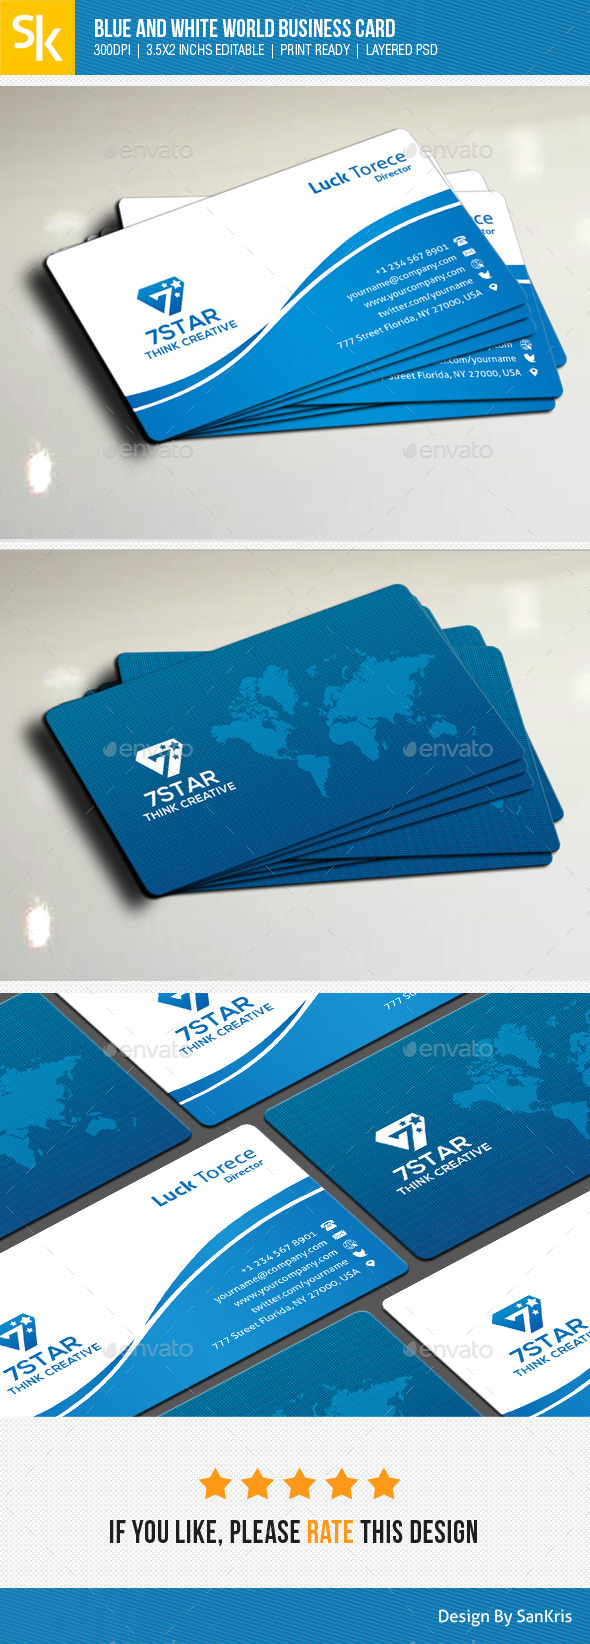 Blue And White World Business Card by Creative-Ocean | GraphicRiver